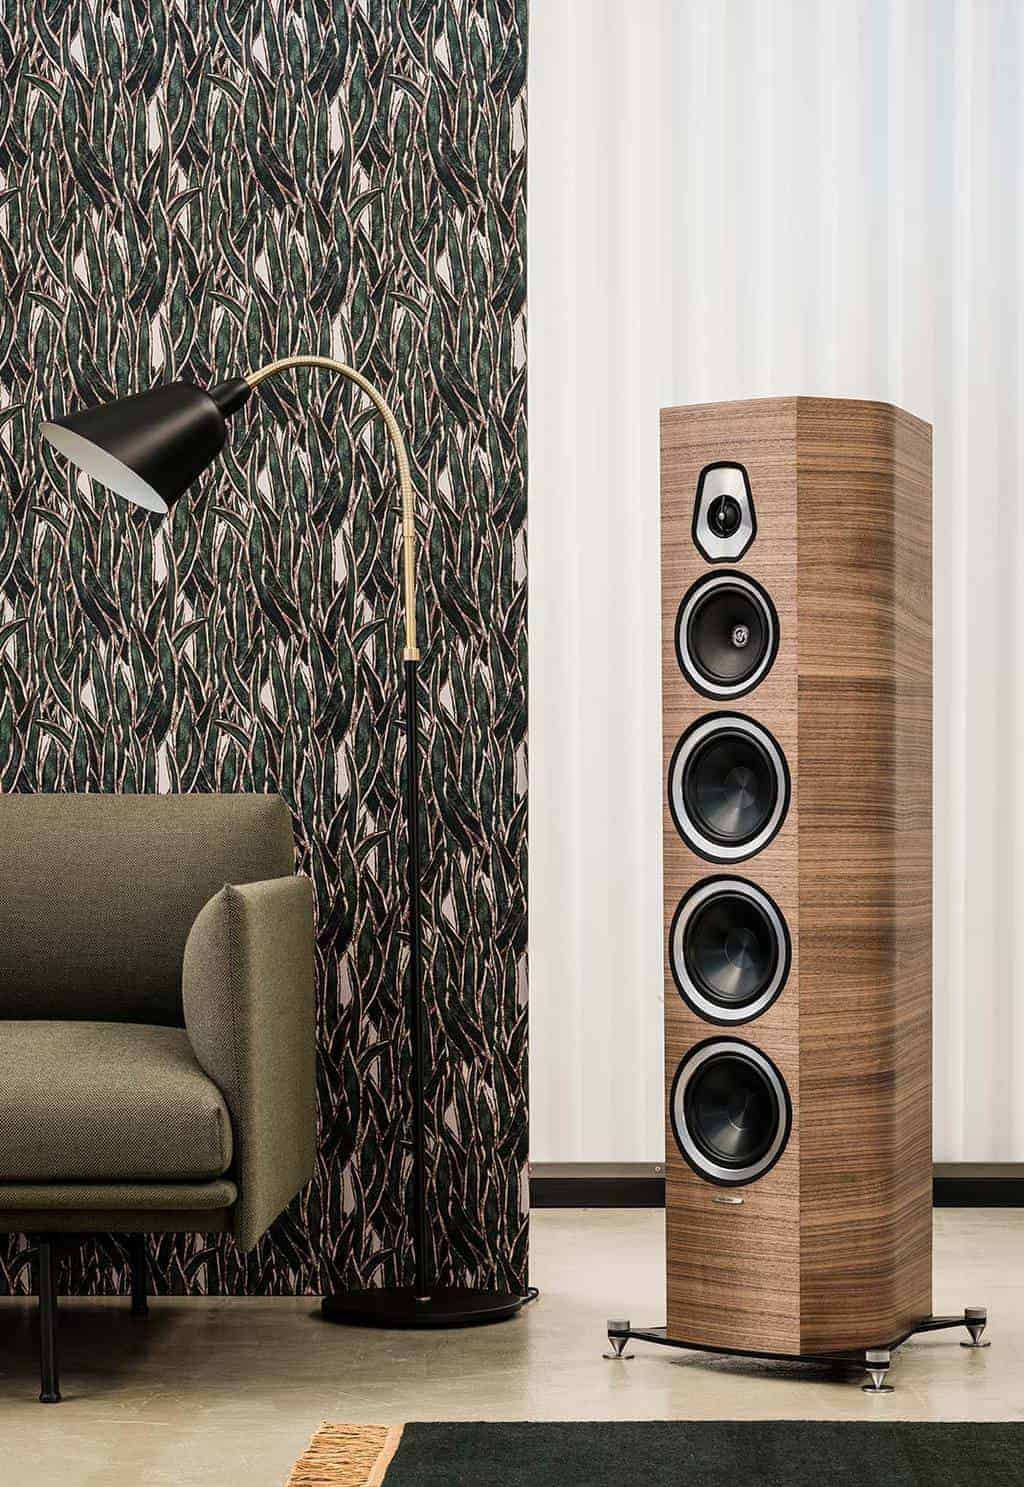 Die Sonus Faber Sonetto in Walnuss